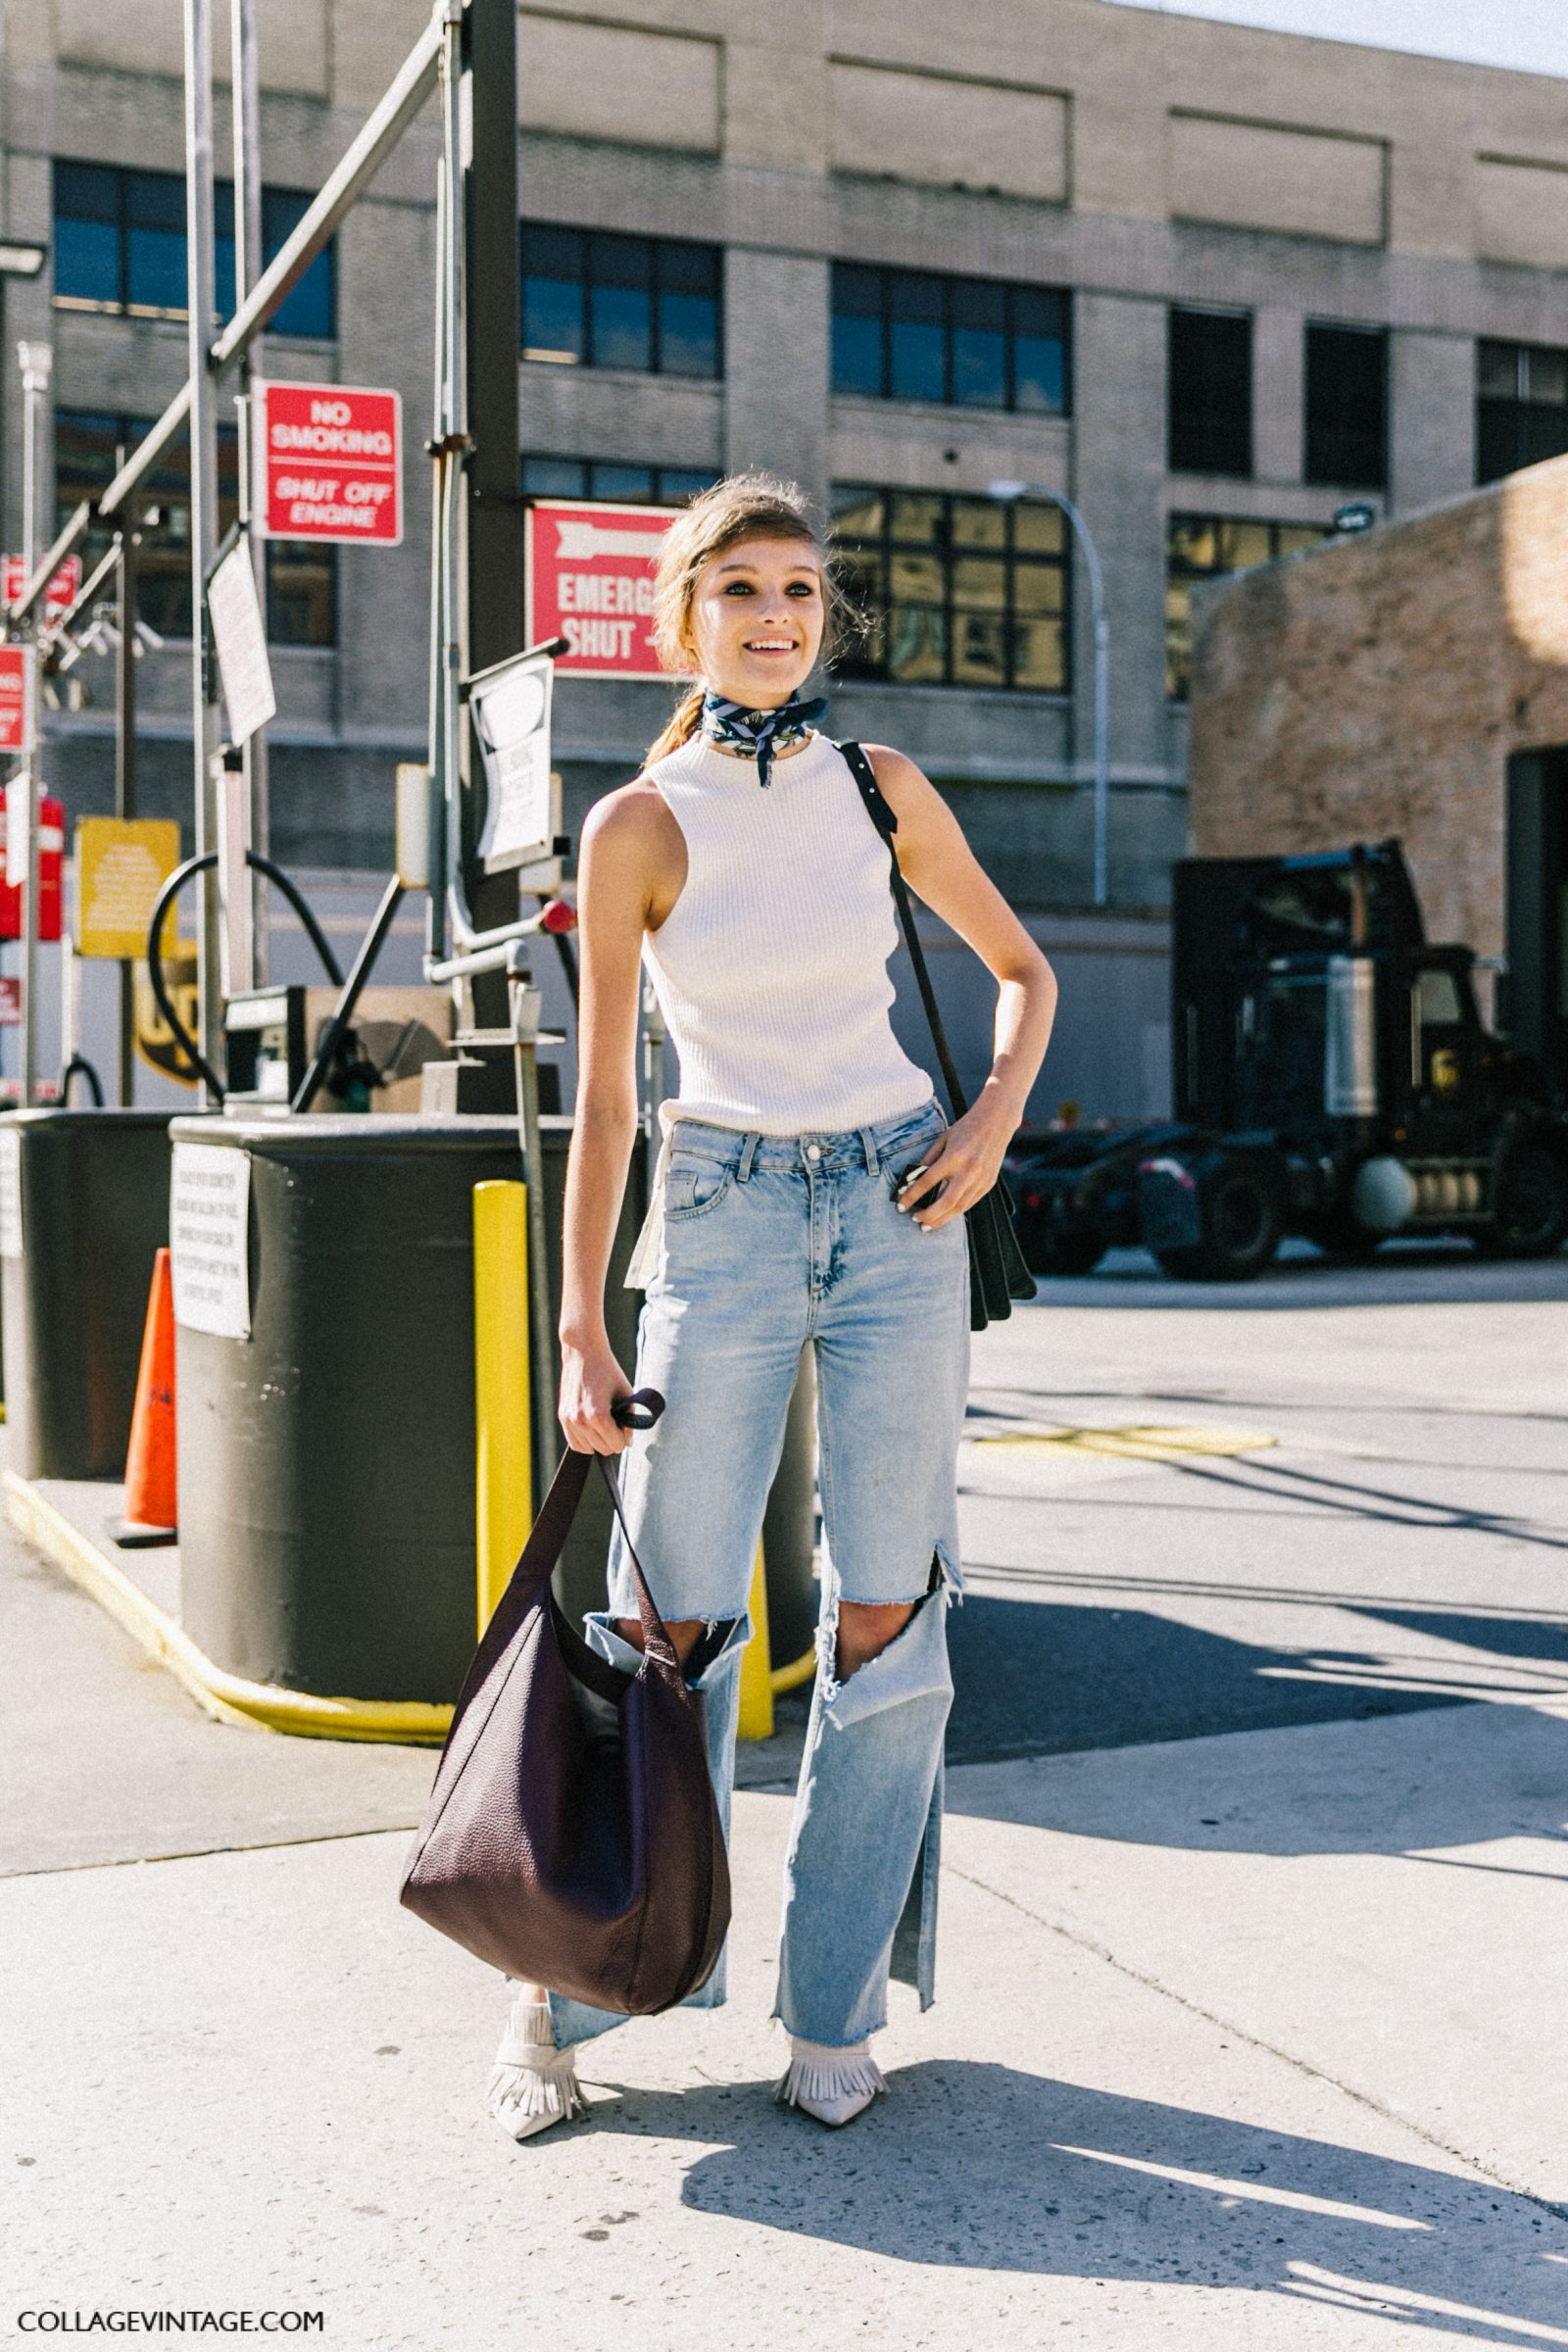 nyfw-new_york_fashion_week_ss17-street_style-outfits-collage_vintage-vintage-phillip_lim-the-row-proenza_schouler-rossie_aussolin-414